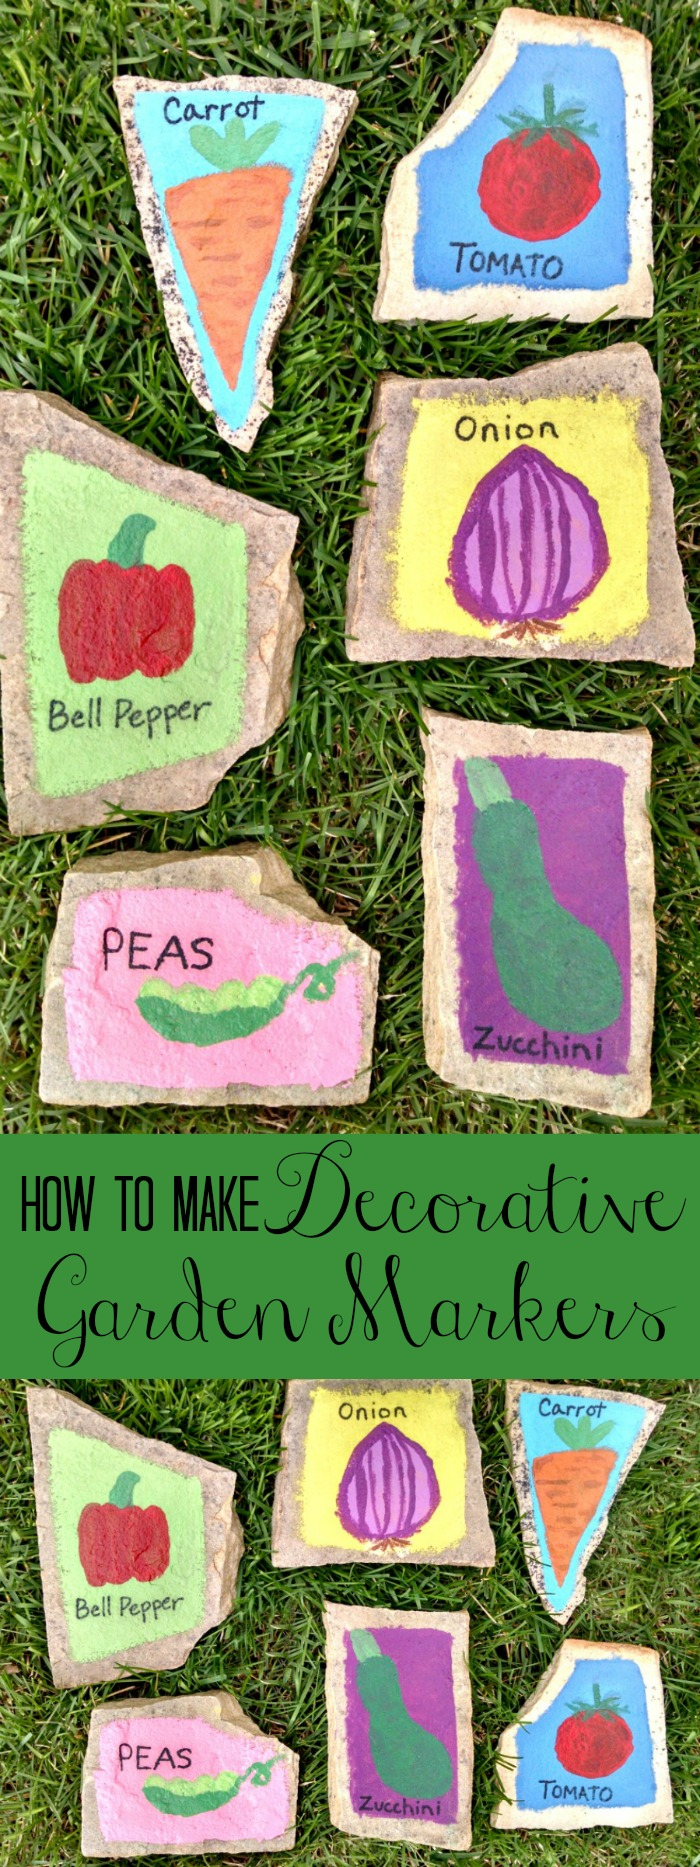 Homemade garden art - How To Make Decorative Garden Markers These Would Be A Great Homemade Gift